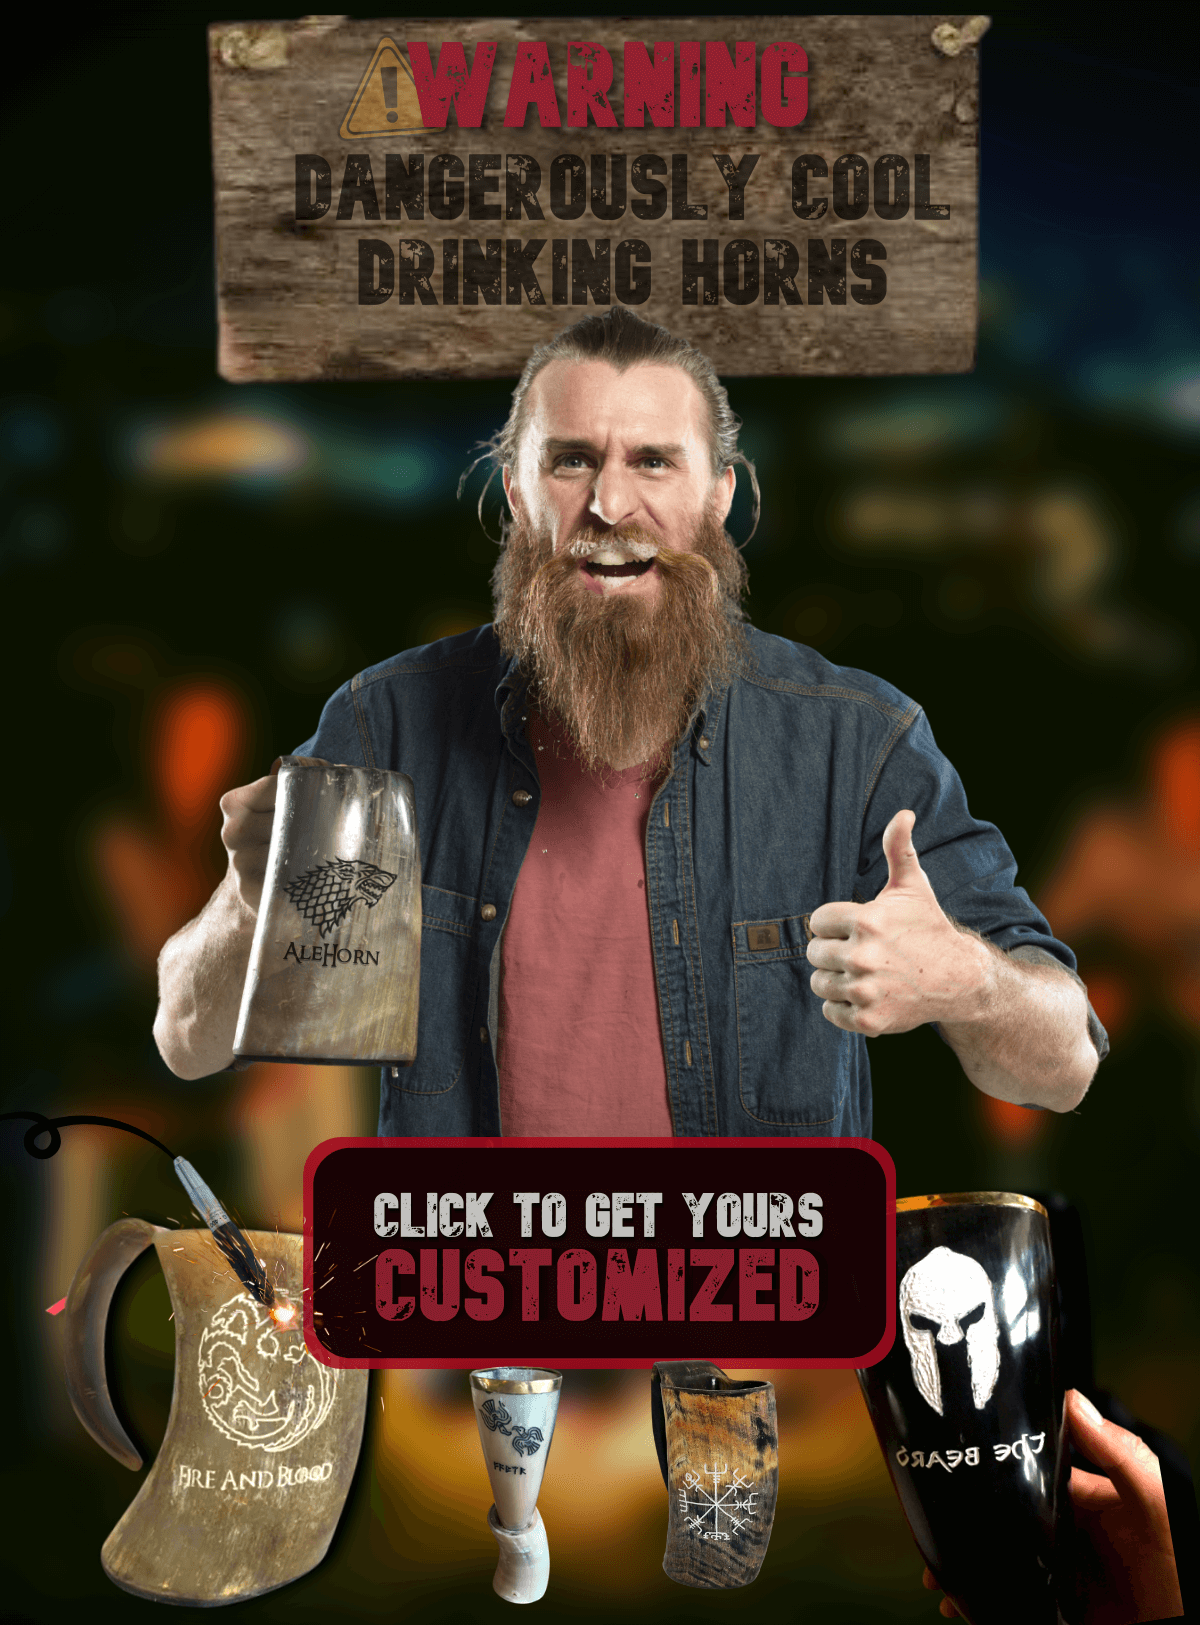 100% ethical ox viking drinking horns. The norse tradition of drinking beer, mead and wine from a real tankard, curved viking horn or shot glass. get horn holsters and norse accessories to go with your drinking mugs